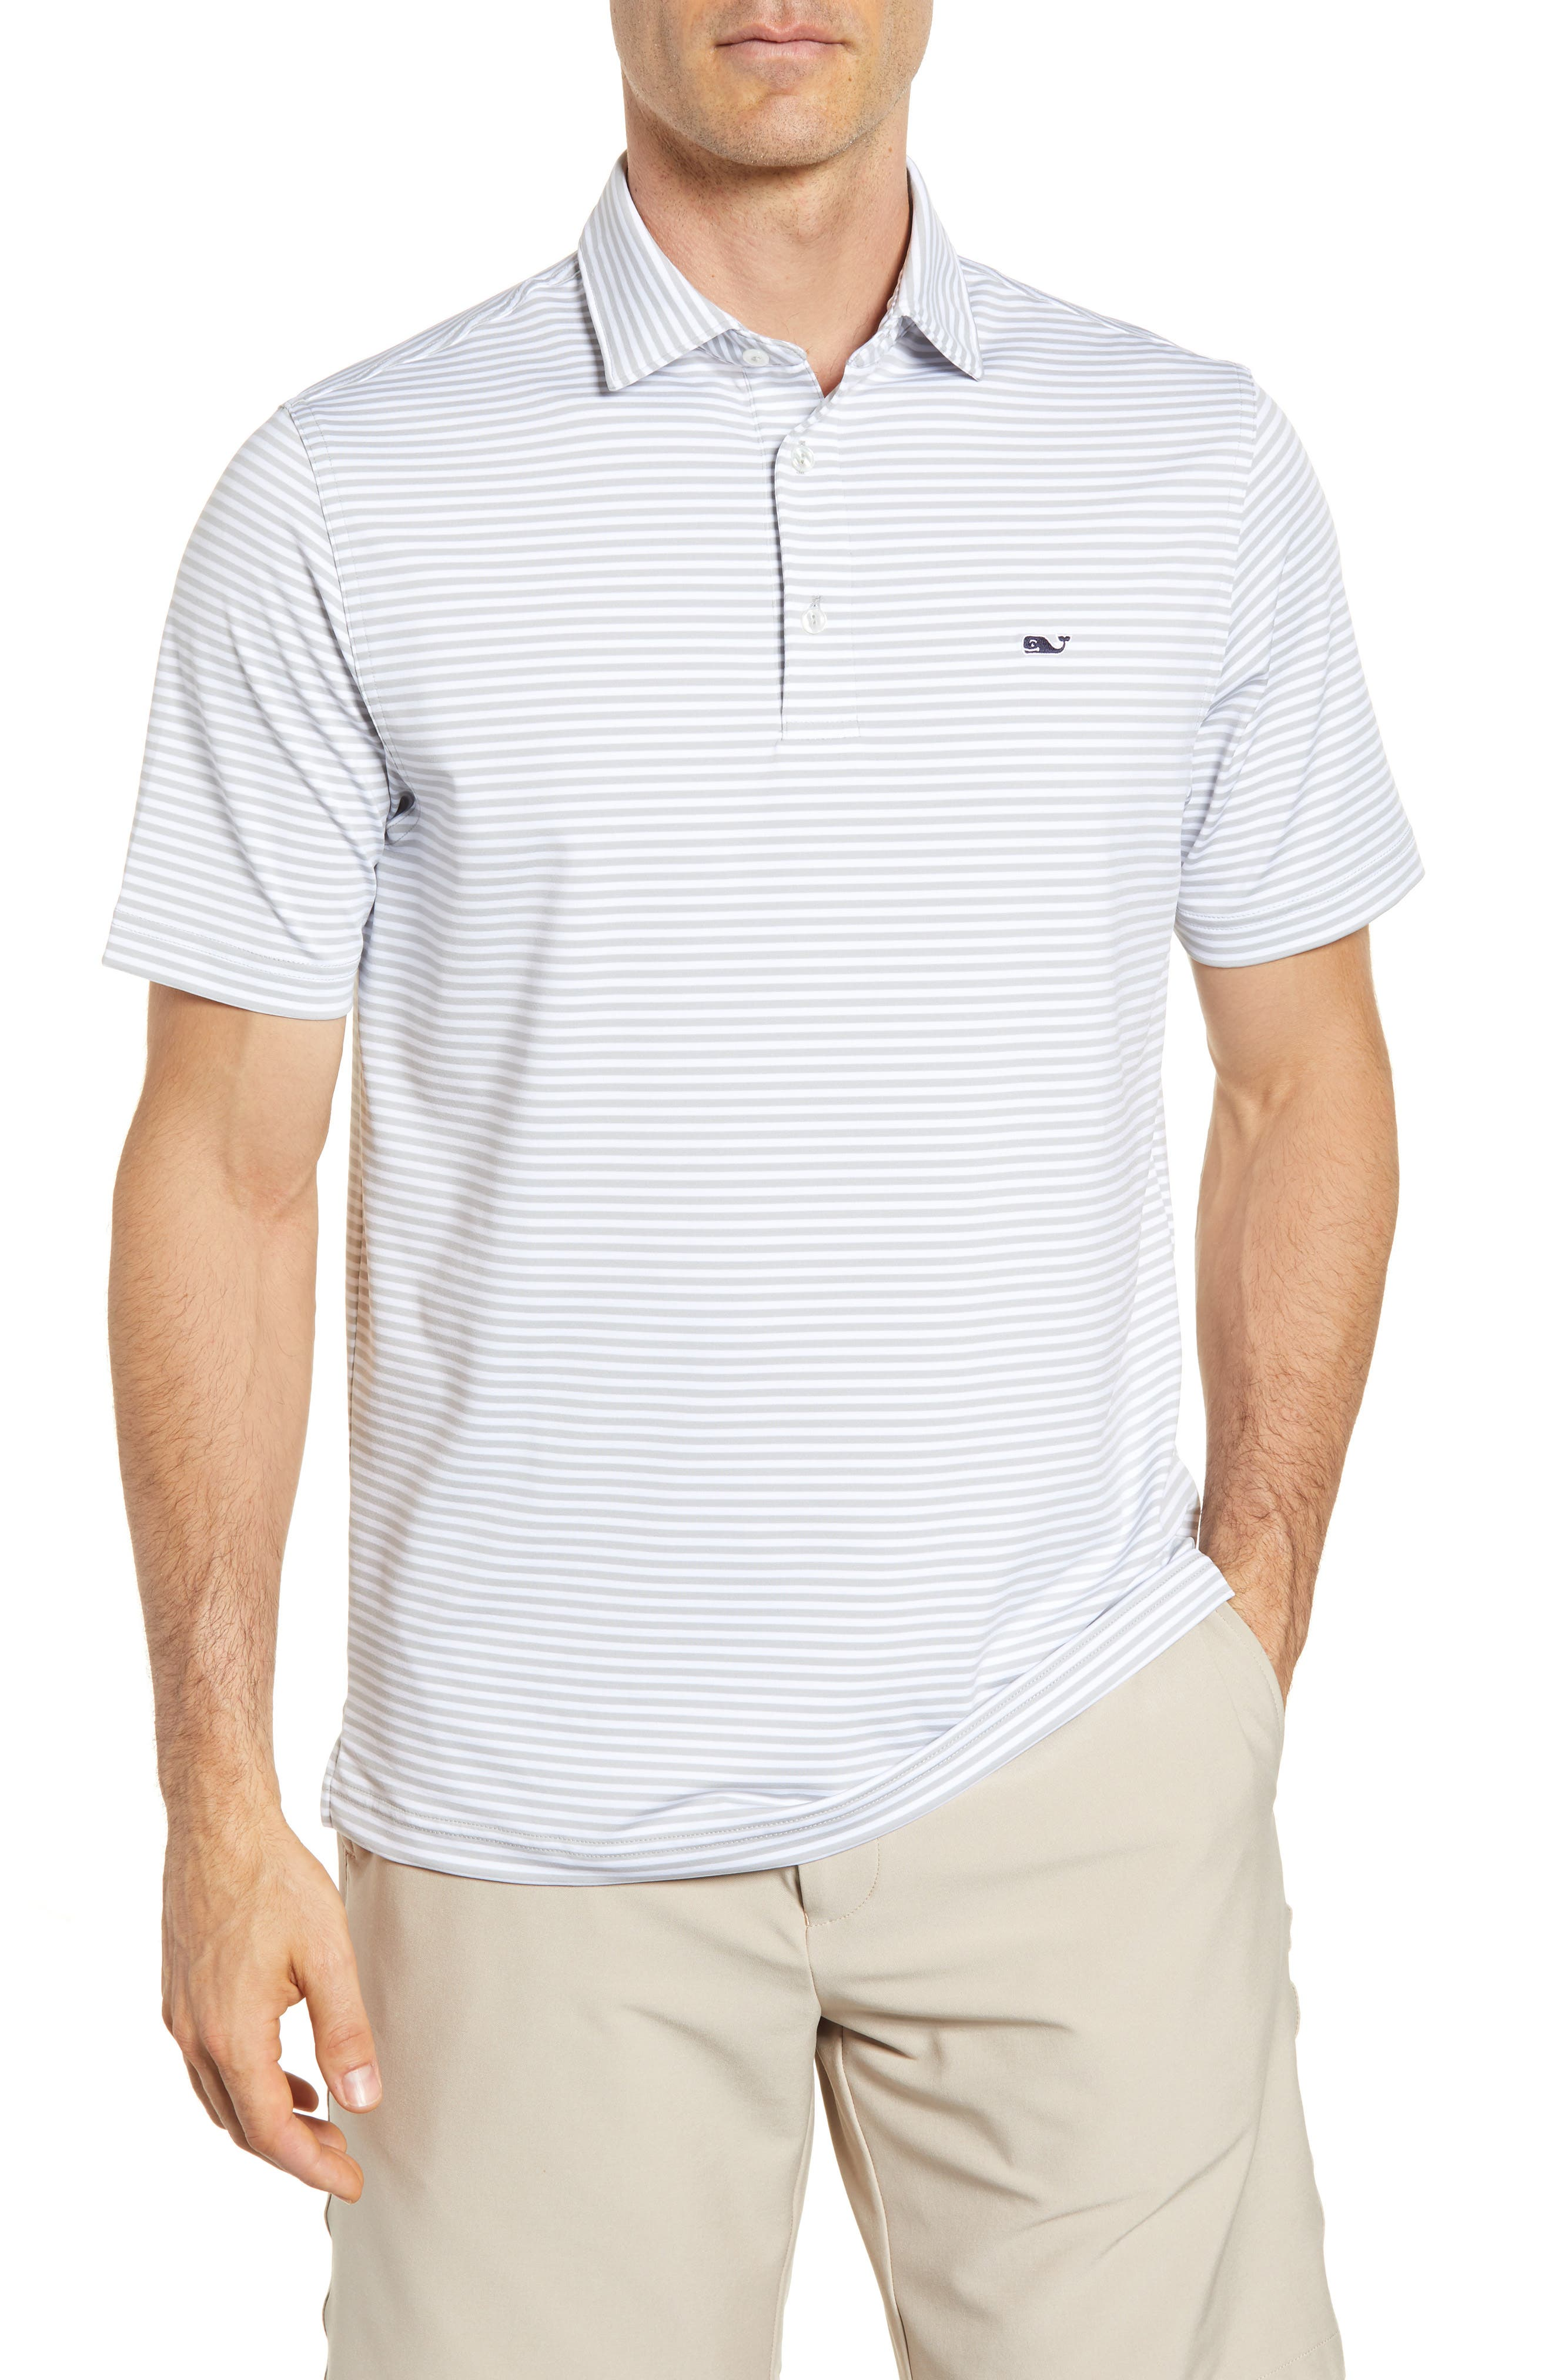 Main Image - vineyard vines Color to White Feeder Stripe Polo